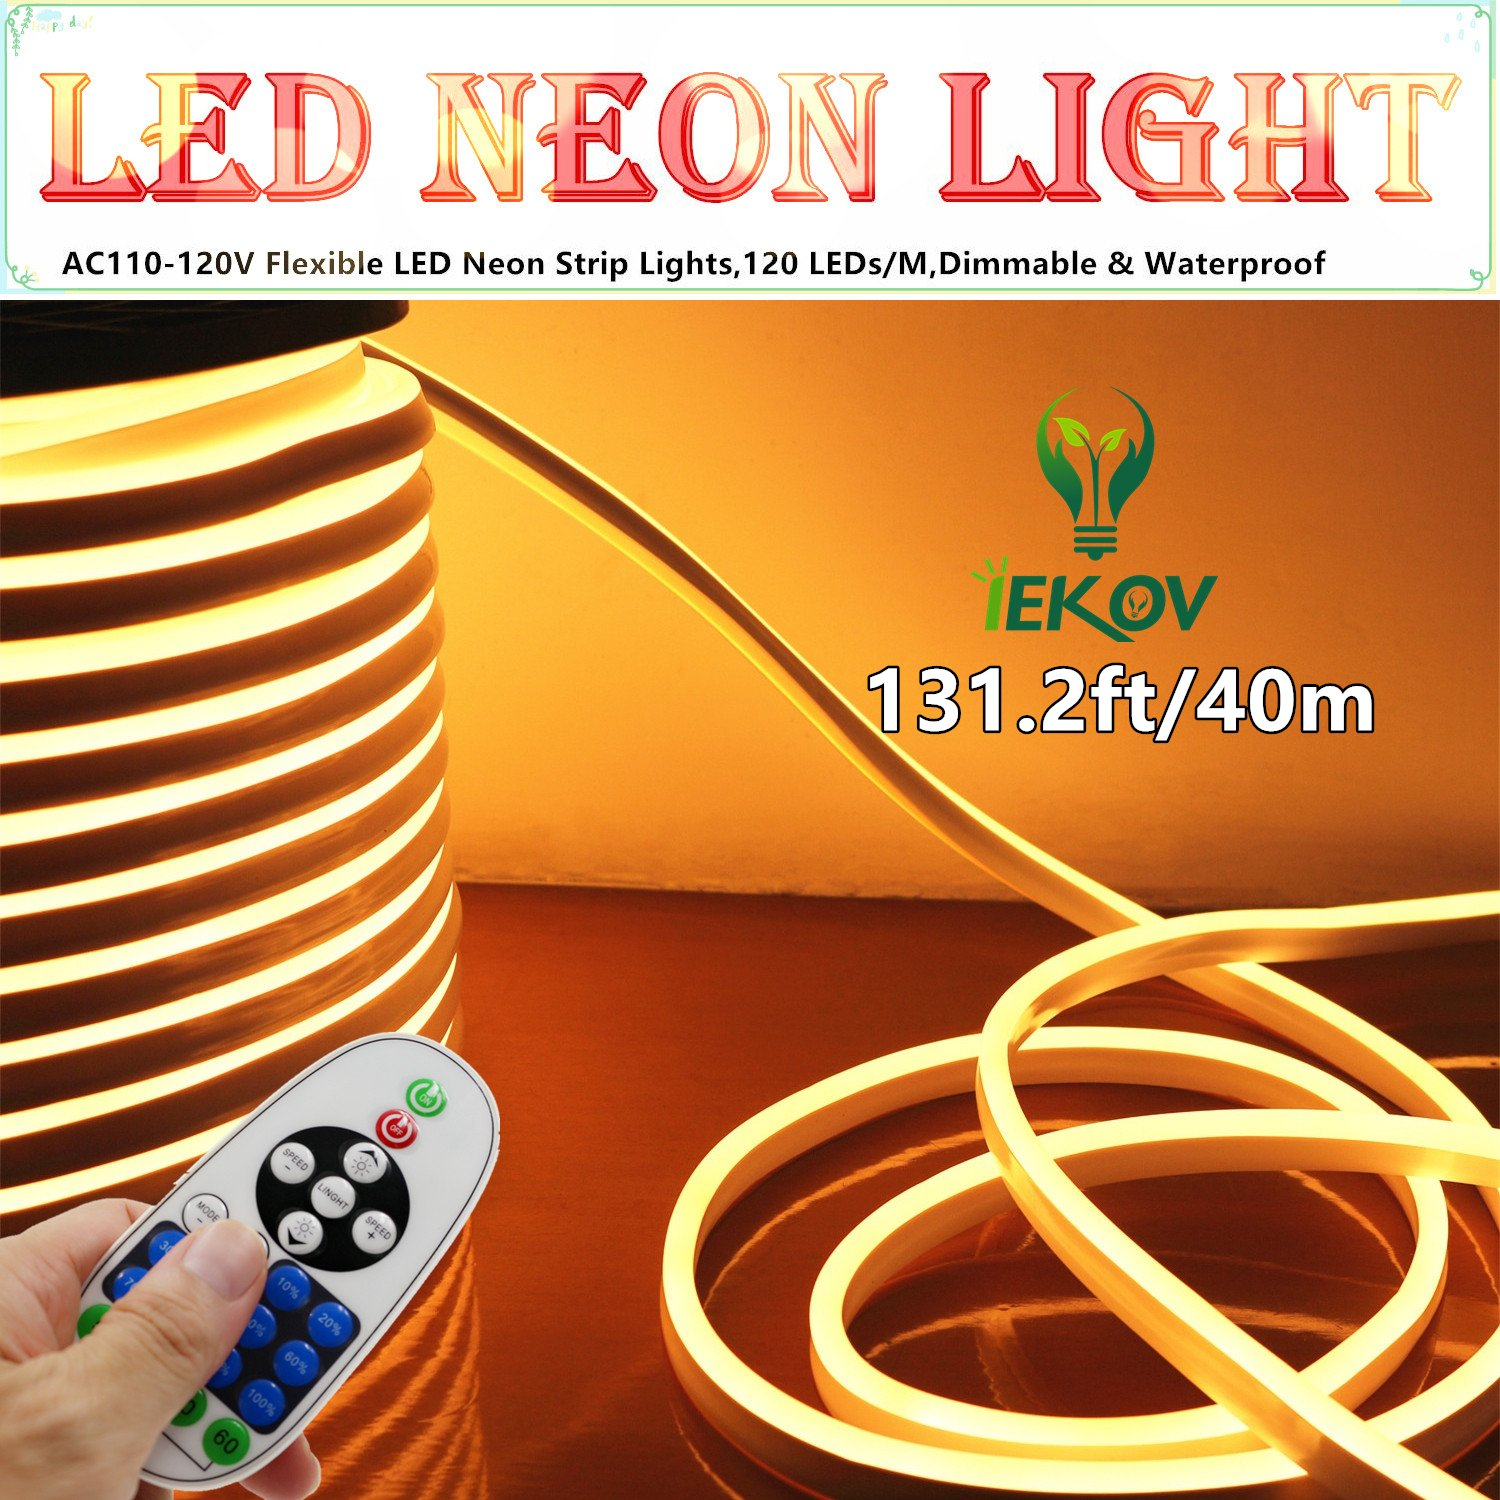 LED NEON LIGHT, IEKOV™ AC 110-120V Flexible LED Neon Strip Lights, 120 LEDs/M, Dimmable, Waterproof 2835 SMD LED Rope Light + Remote Controller for Home Decoration (131.2ft/40m, Warm White)